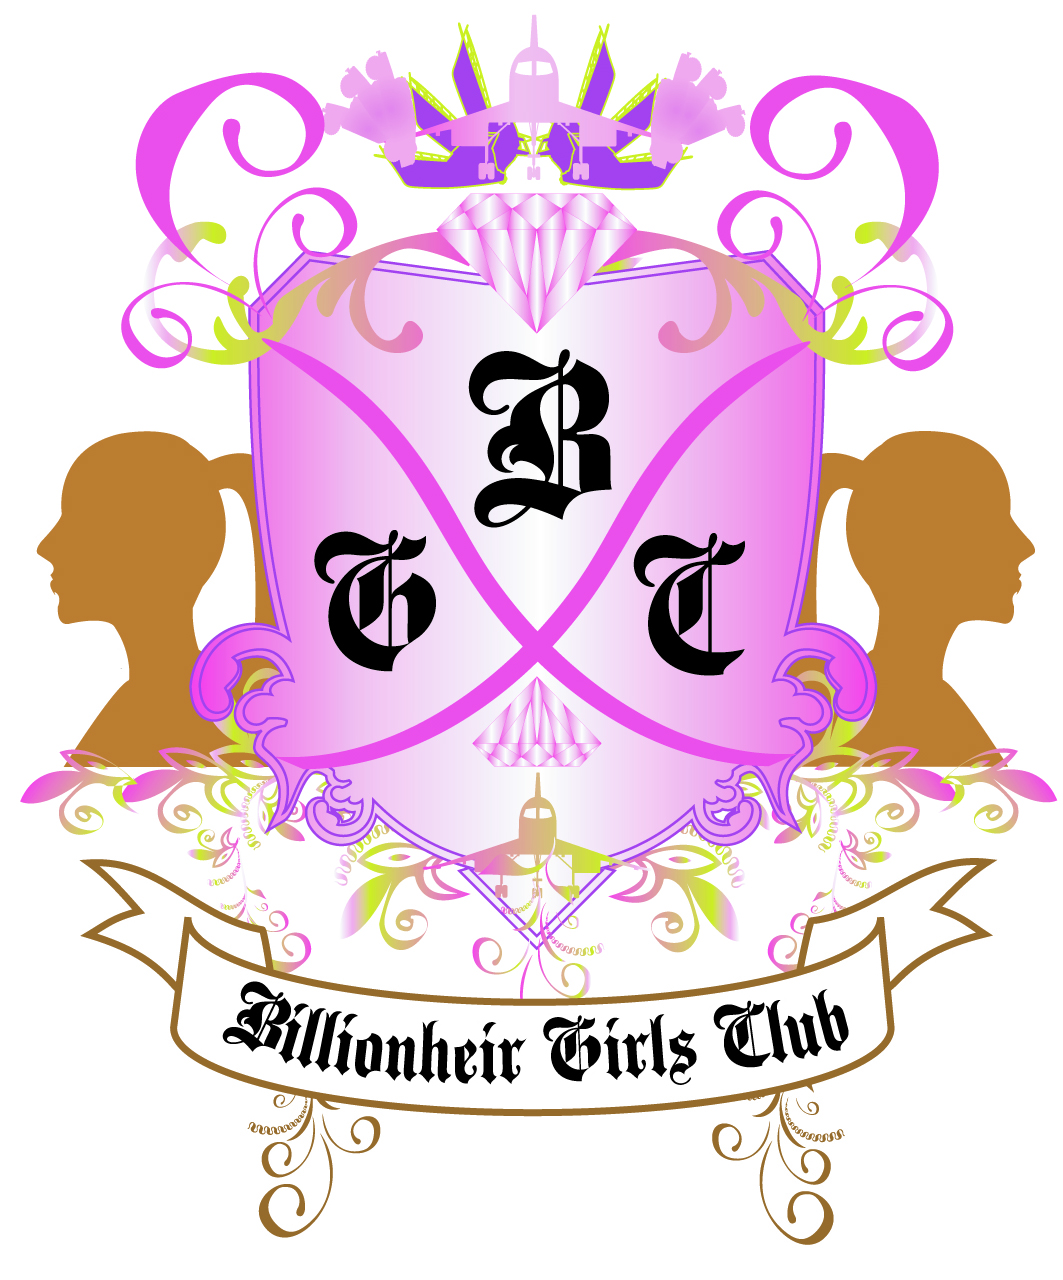 Logo – Billionheir Girls Club